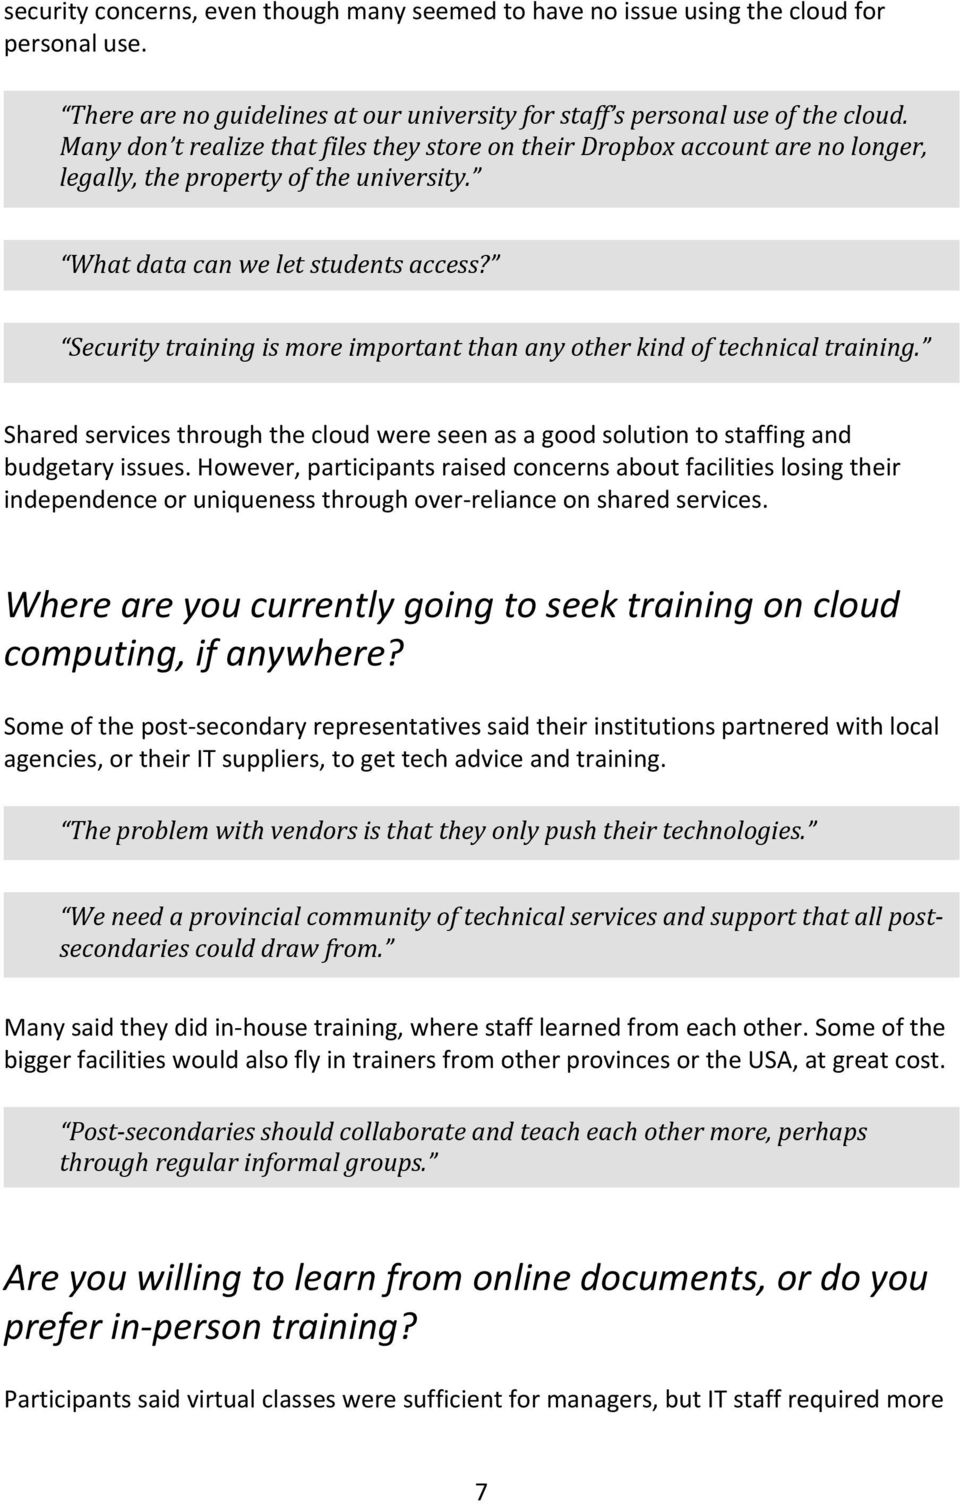 Security training is more important than any other kind of technical training. Shared services through the cloud were seen as a good solution to staffing and budgetary issues.